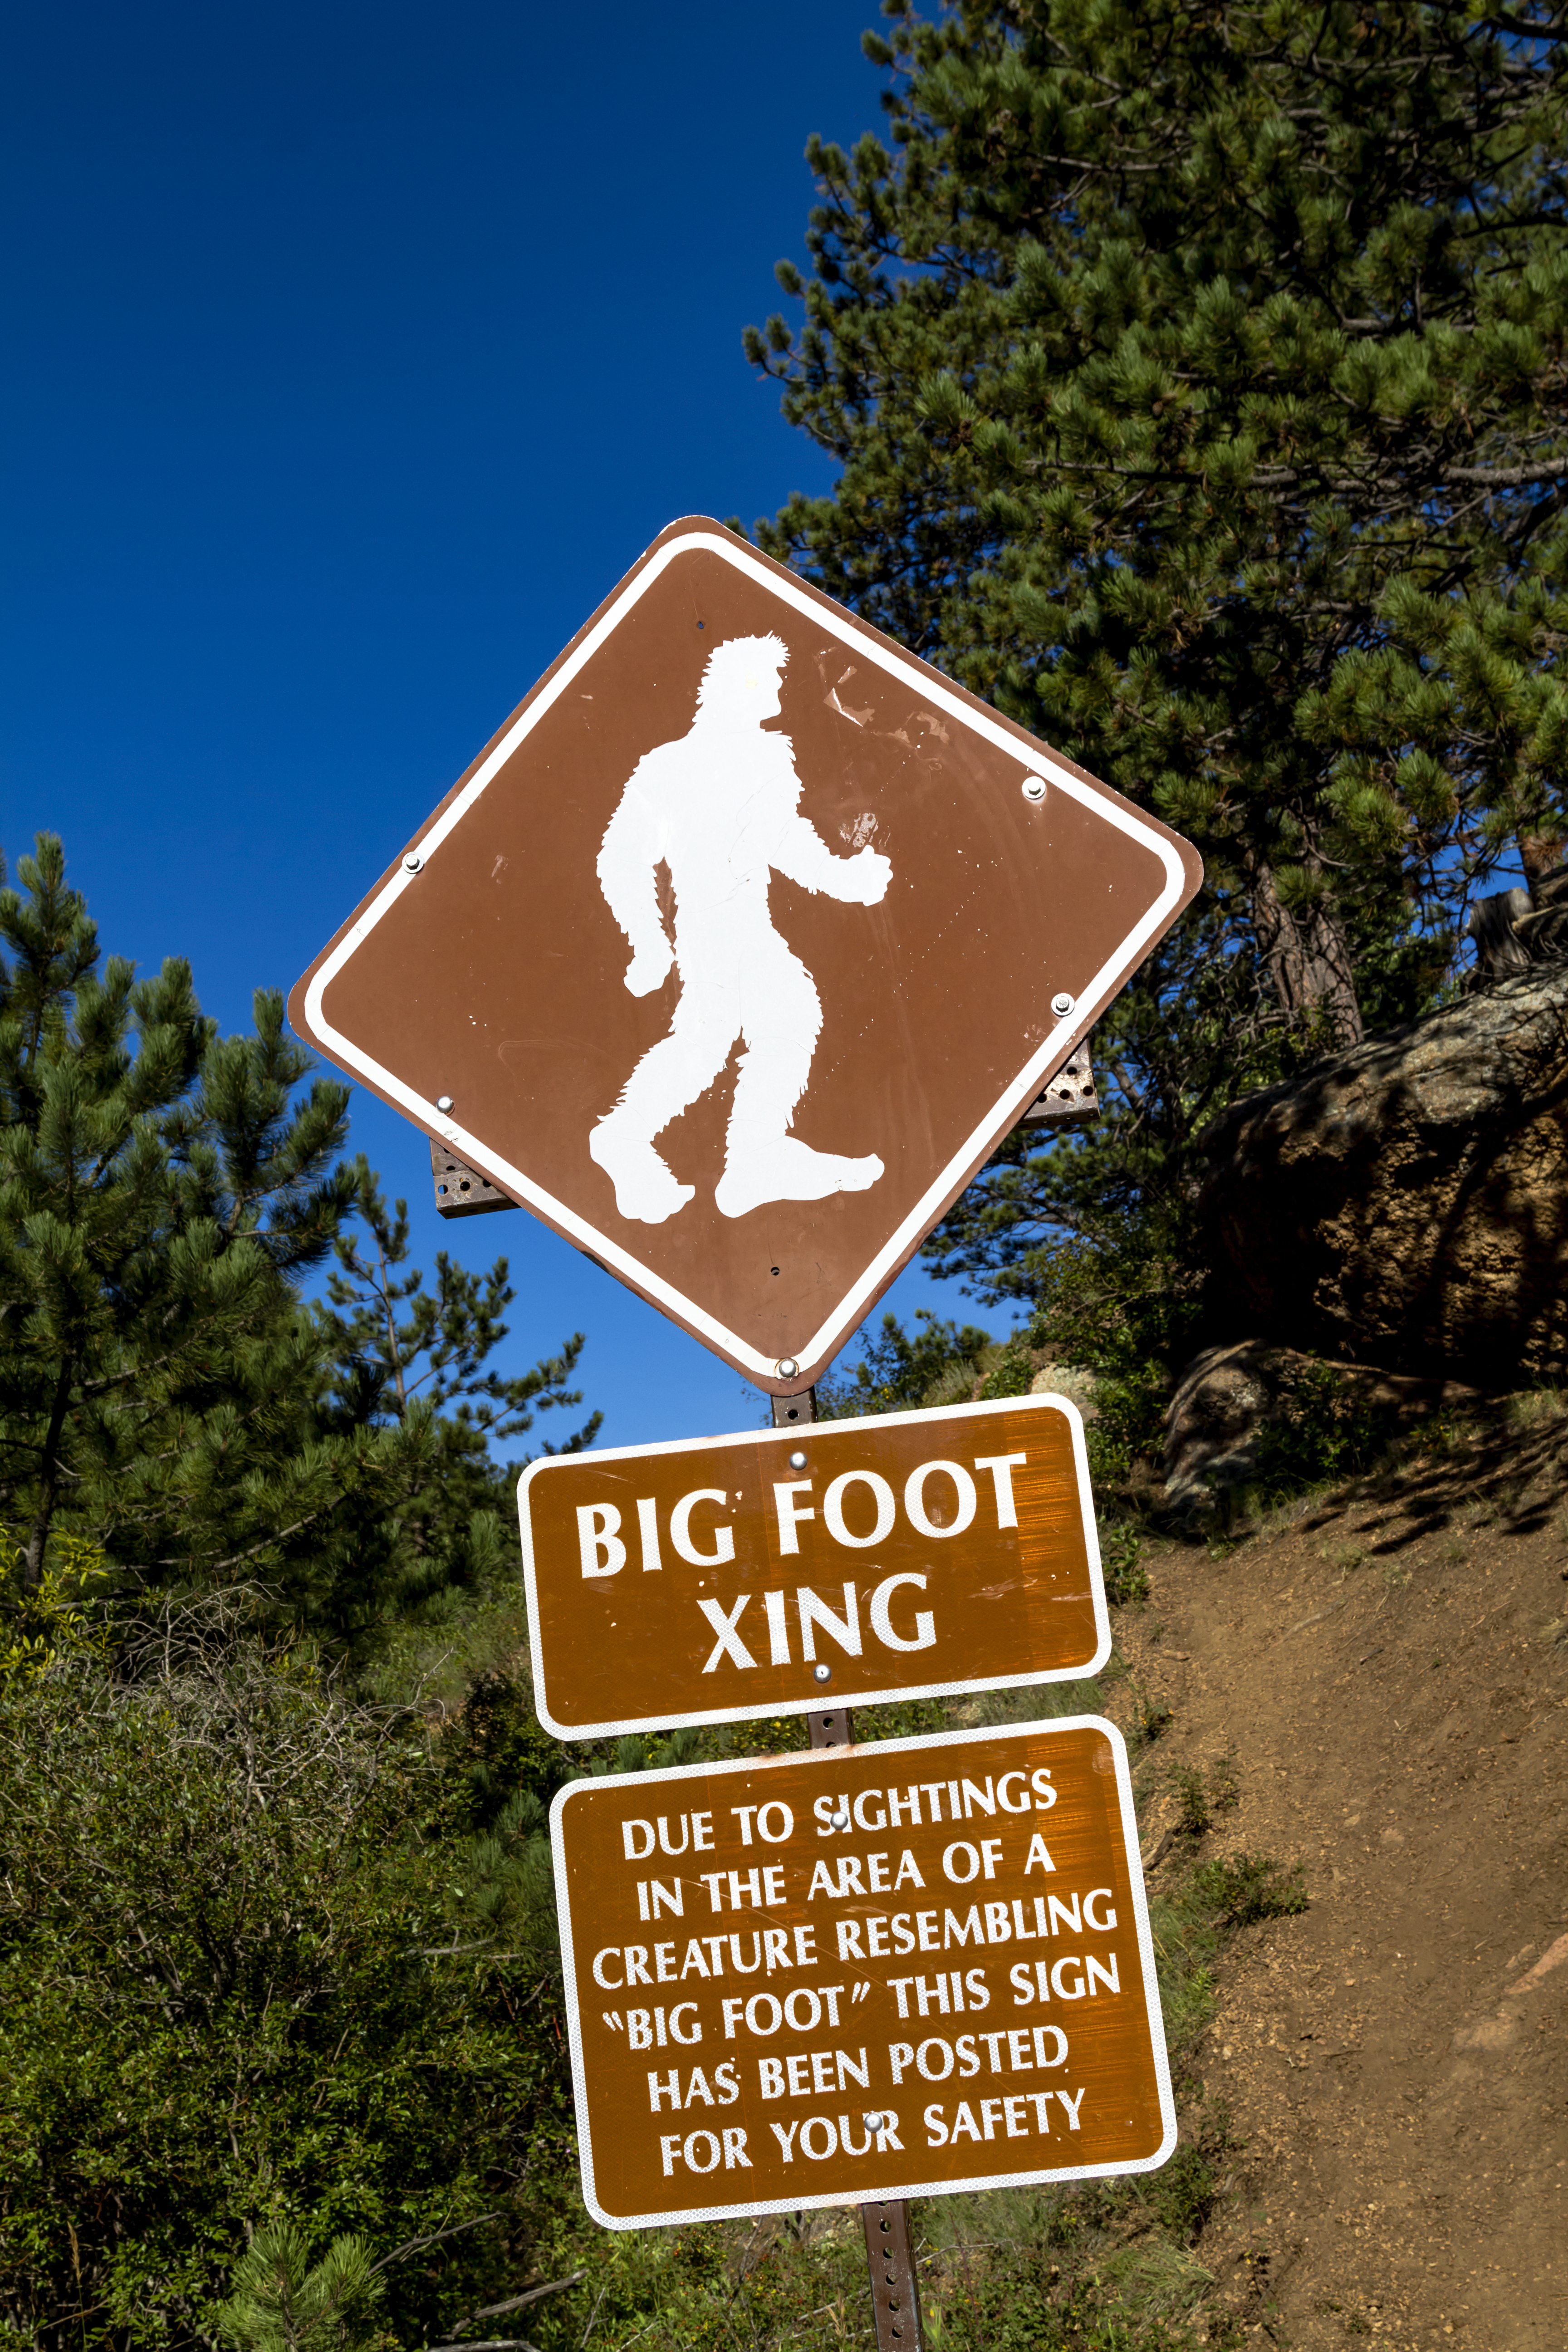 Big foot crossing sign with warning abou